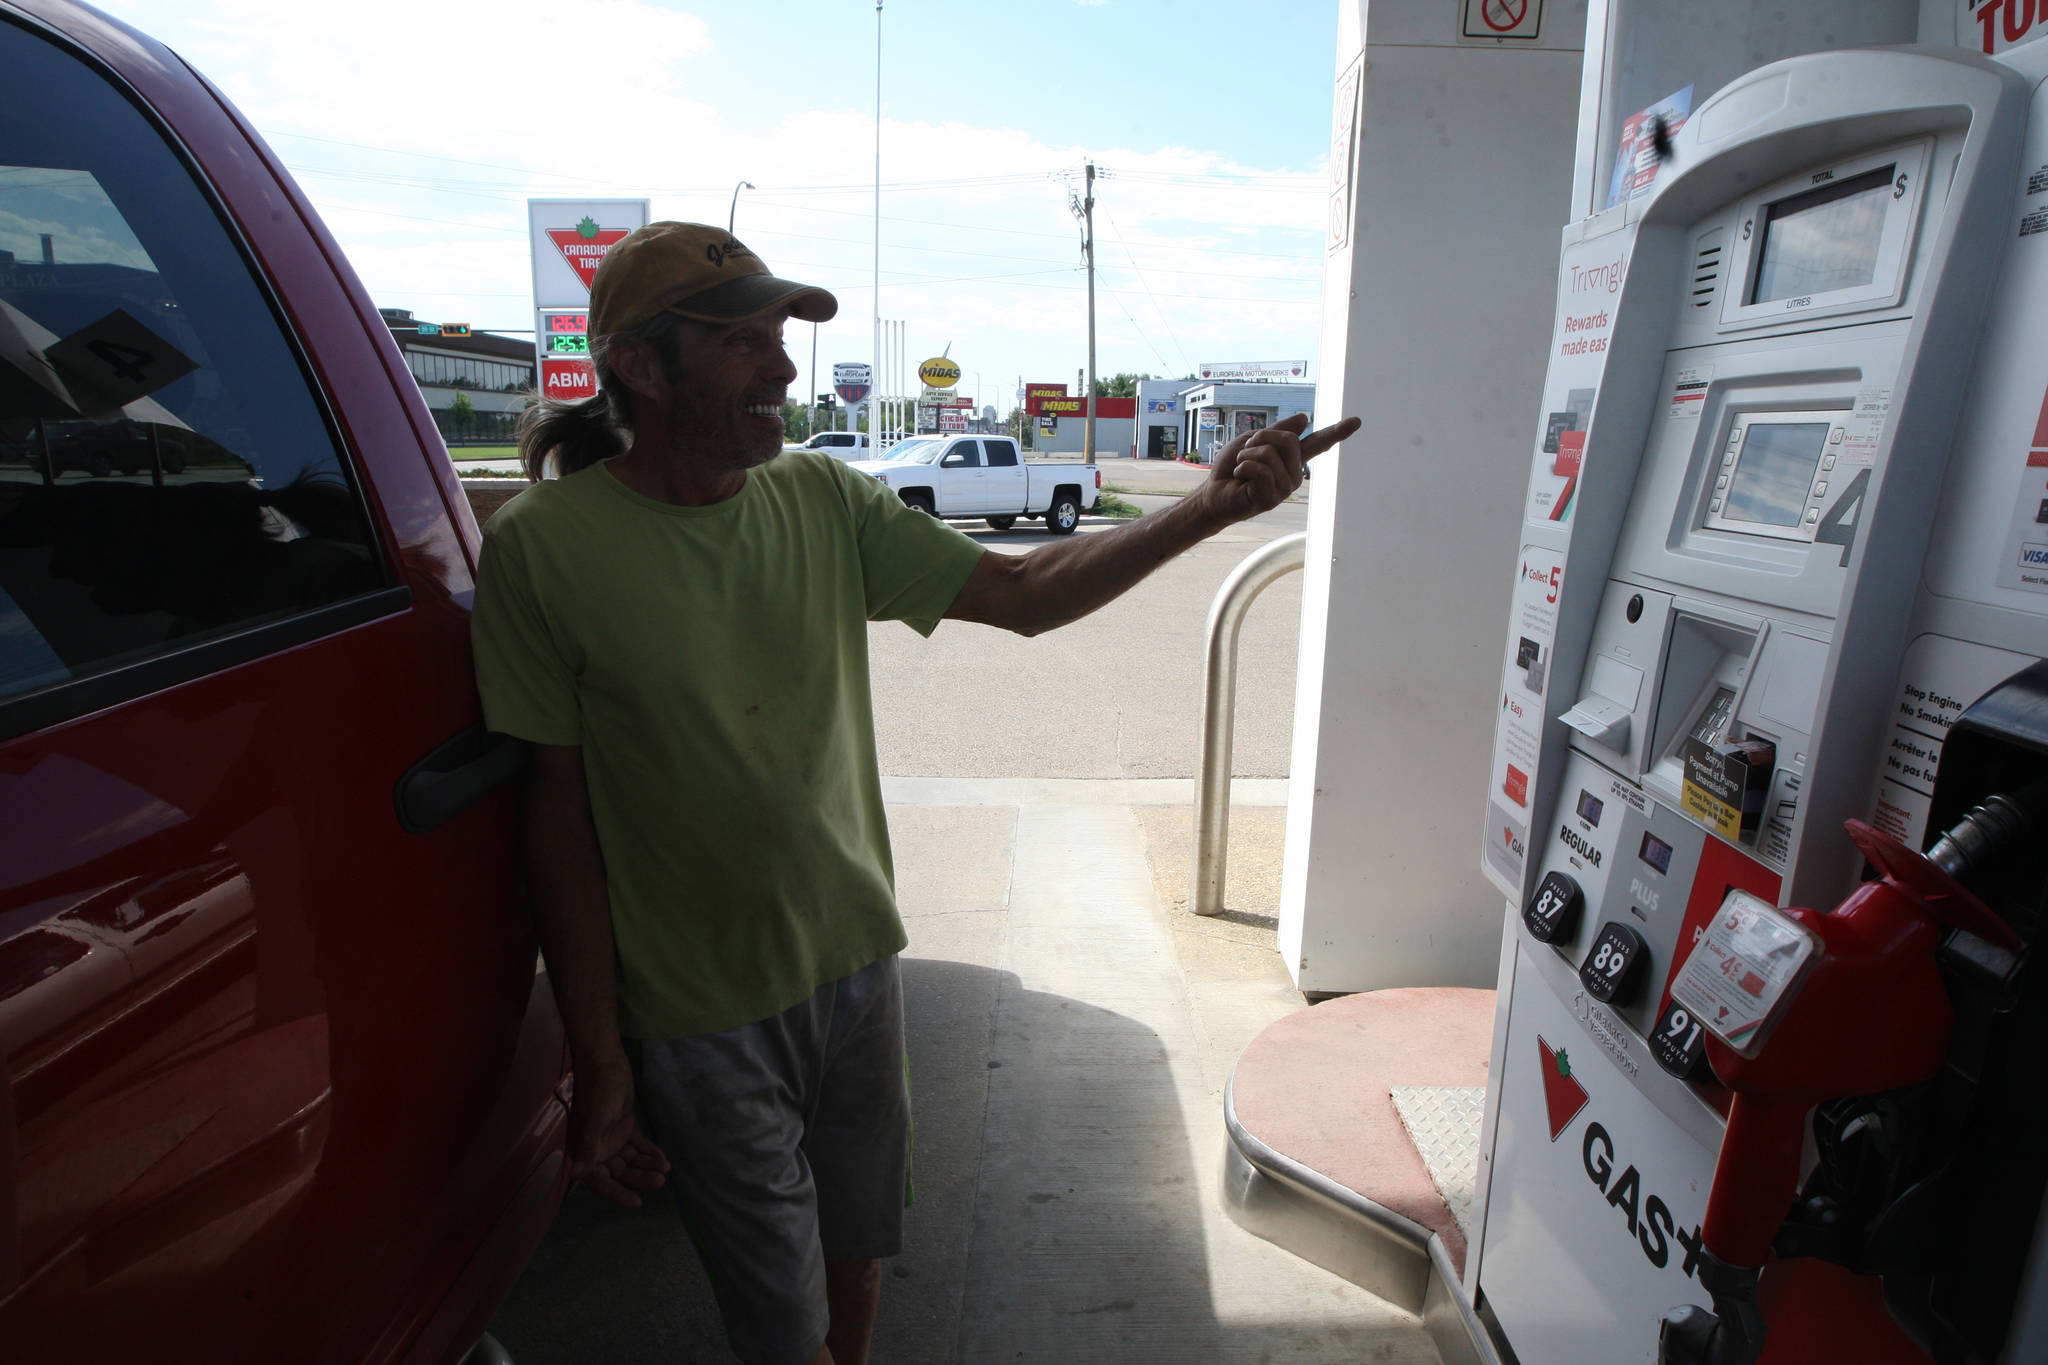 Chilliwack residents are fuming over the cost of local gas prices in relation to nearby communities. (Photo by MURRAY CRAWFORD/Advocate staff)